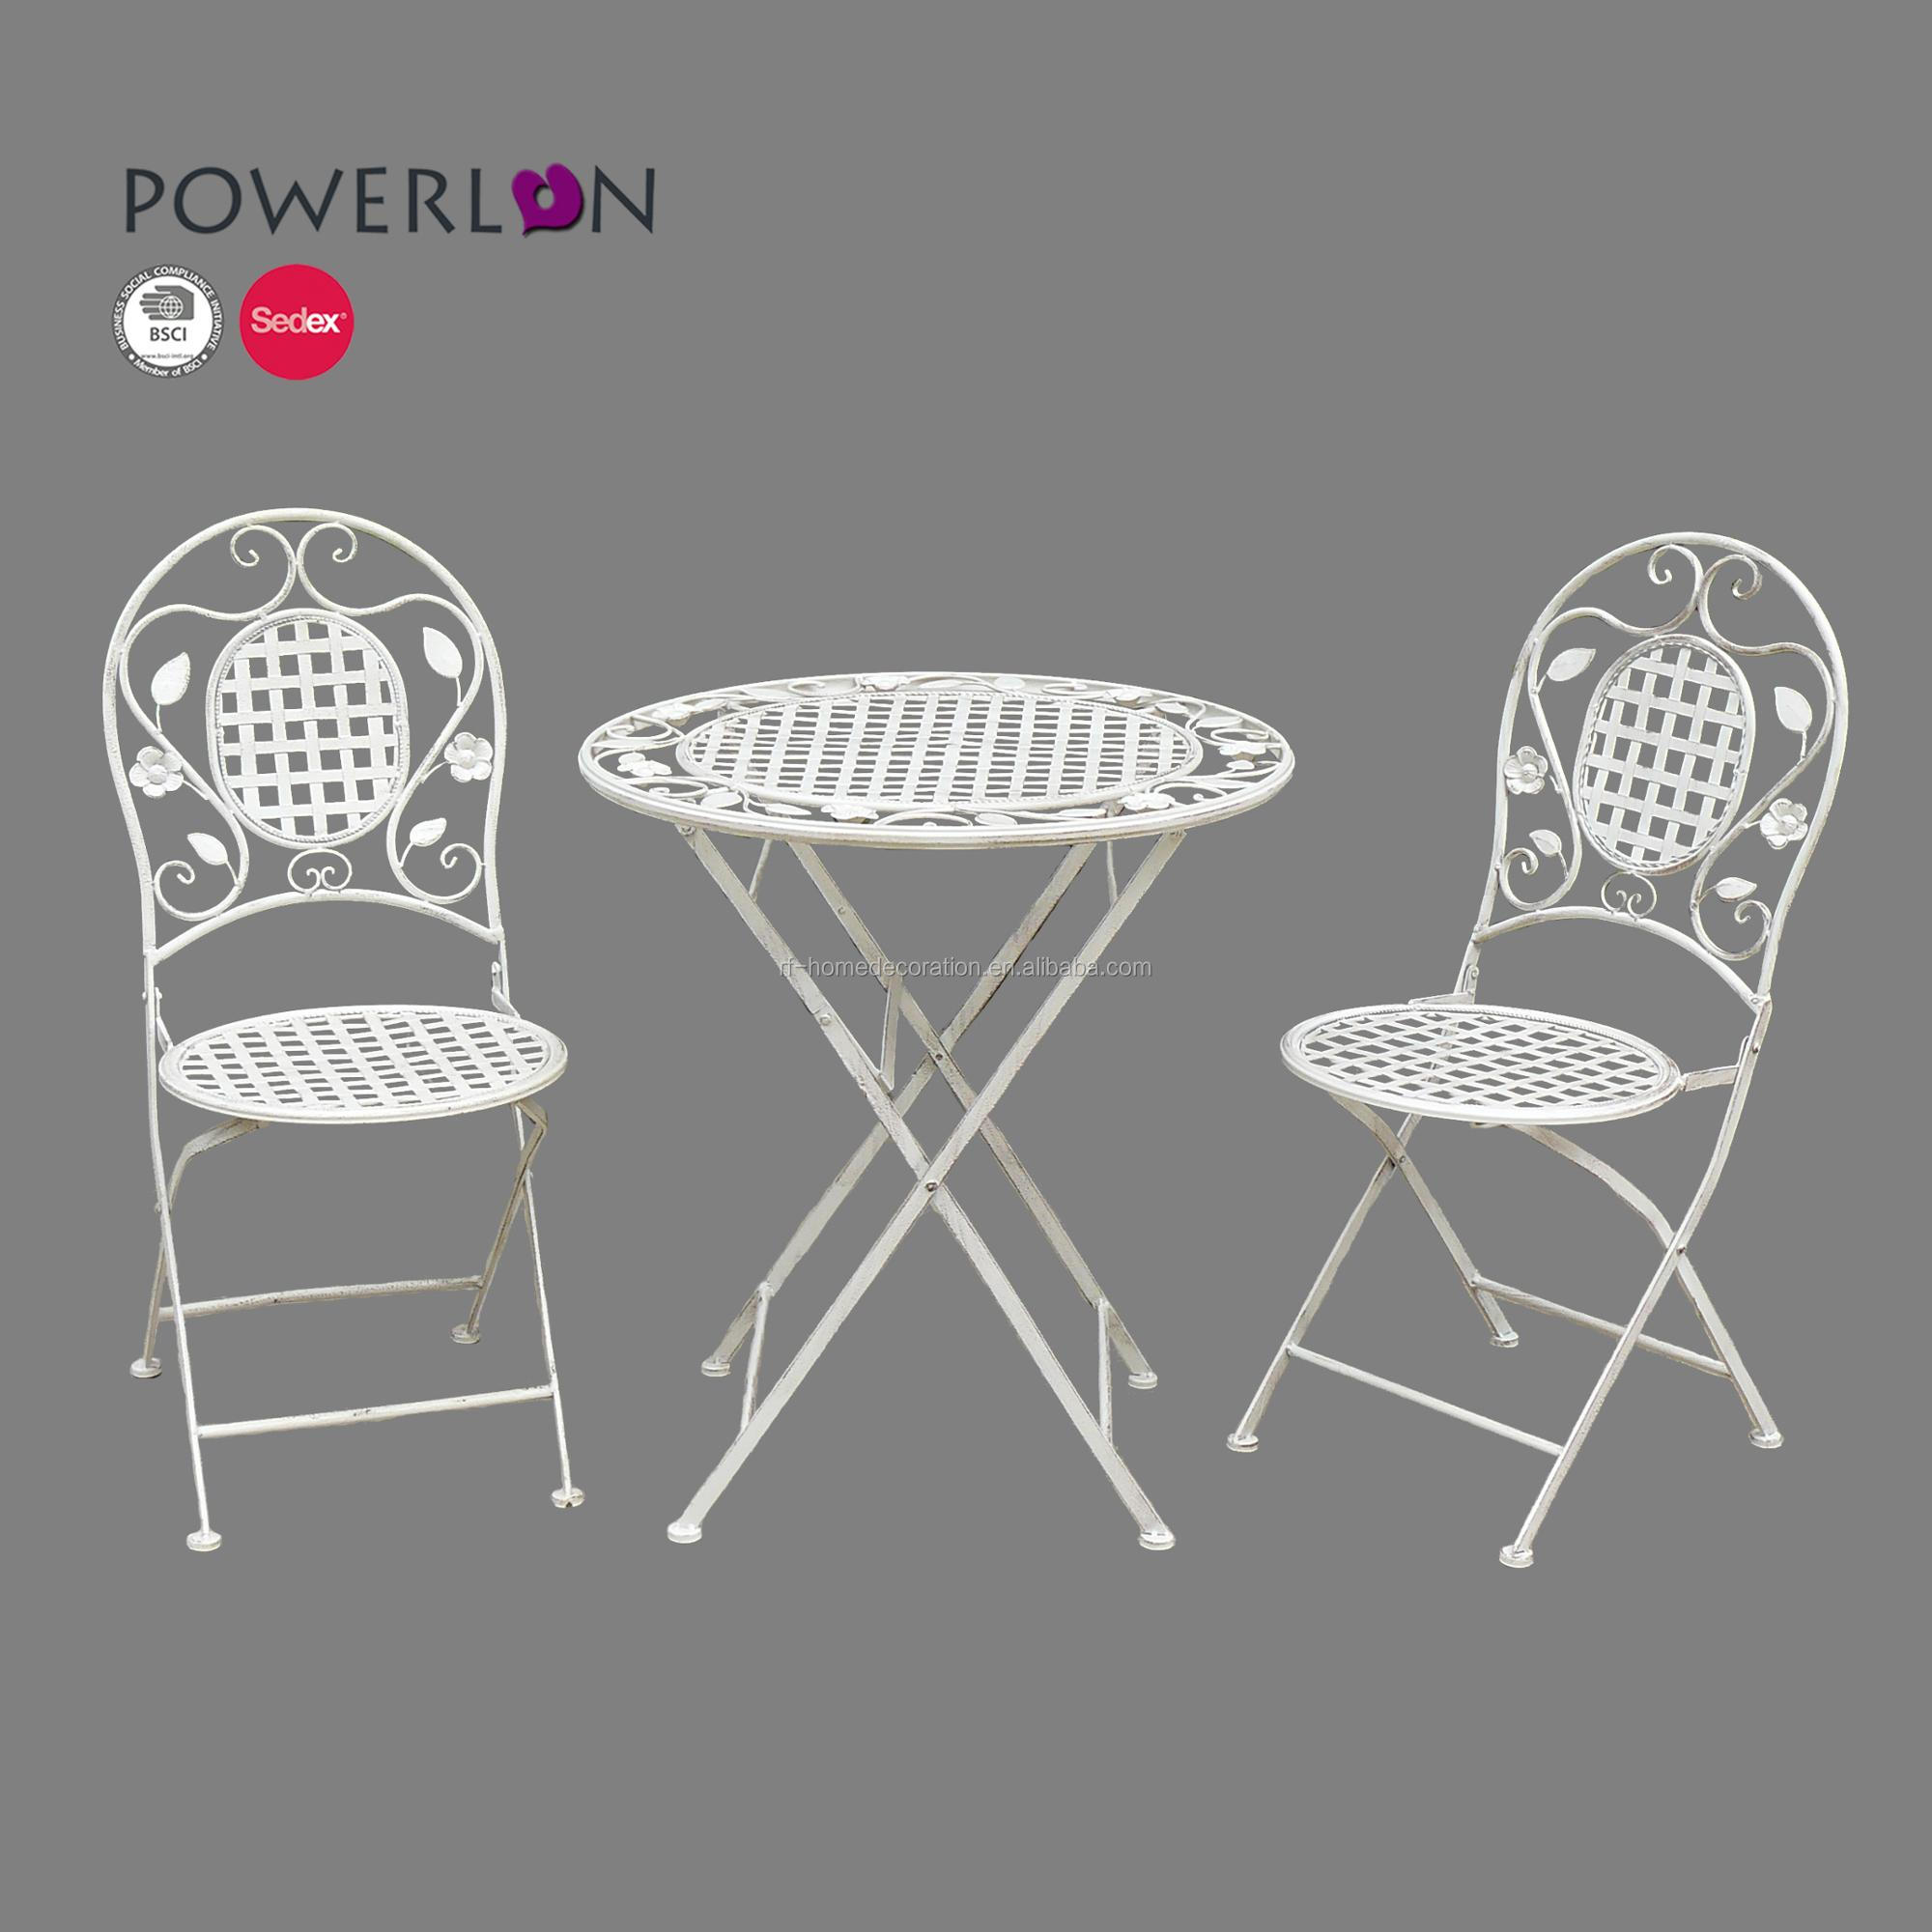 Wrought Iron Folding Table Wrought Iron Folding Table Suppliers and